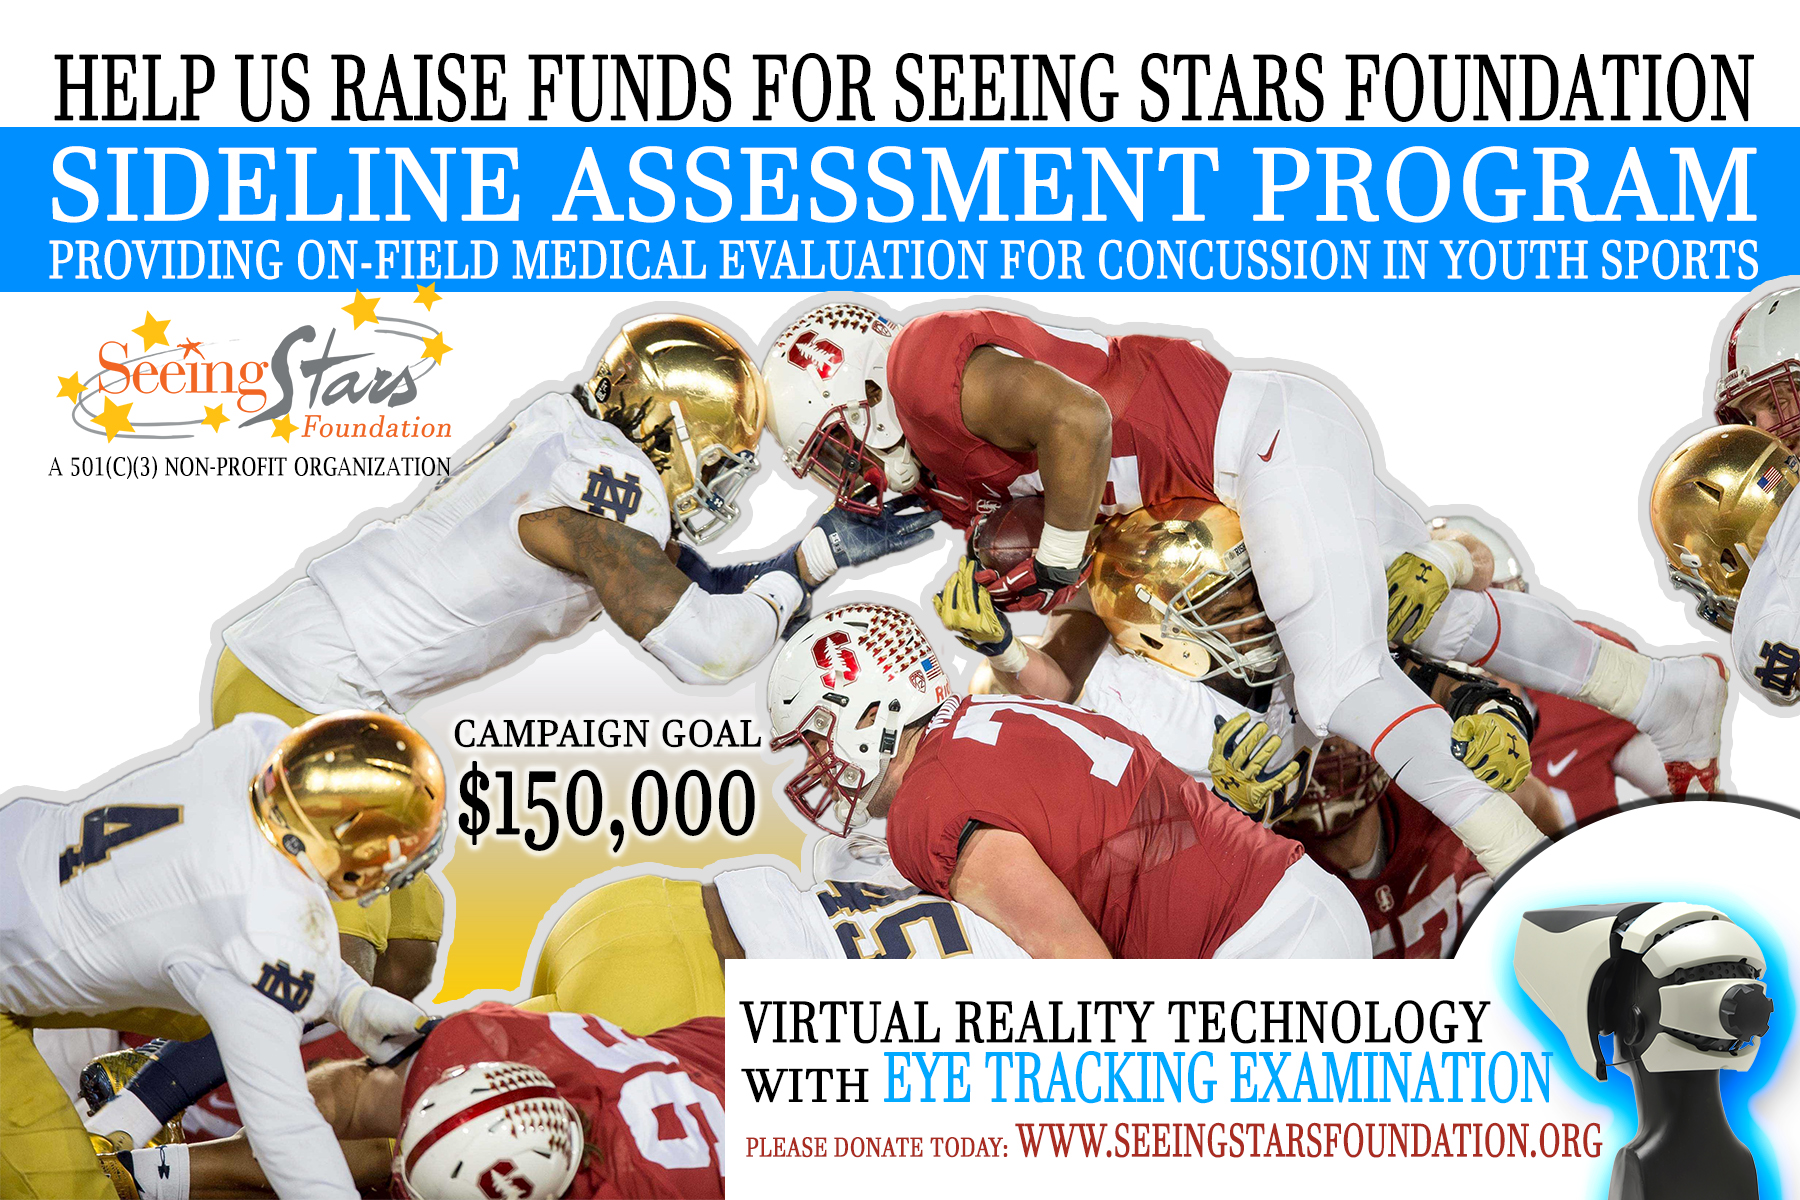 Fundraiser-For-Sideline-Assessment-Program---Flyer_front-6-x-4-in-at-300dpi